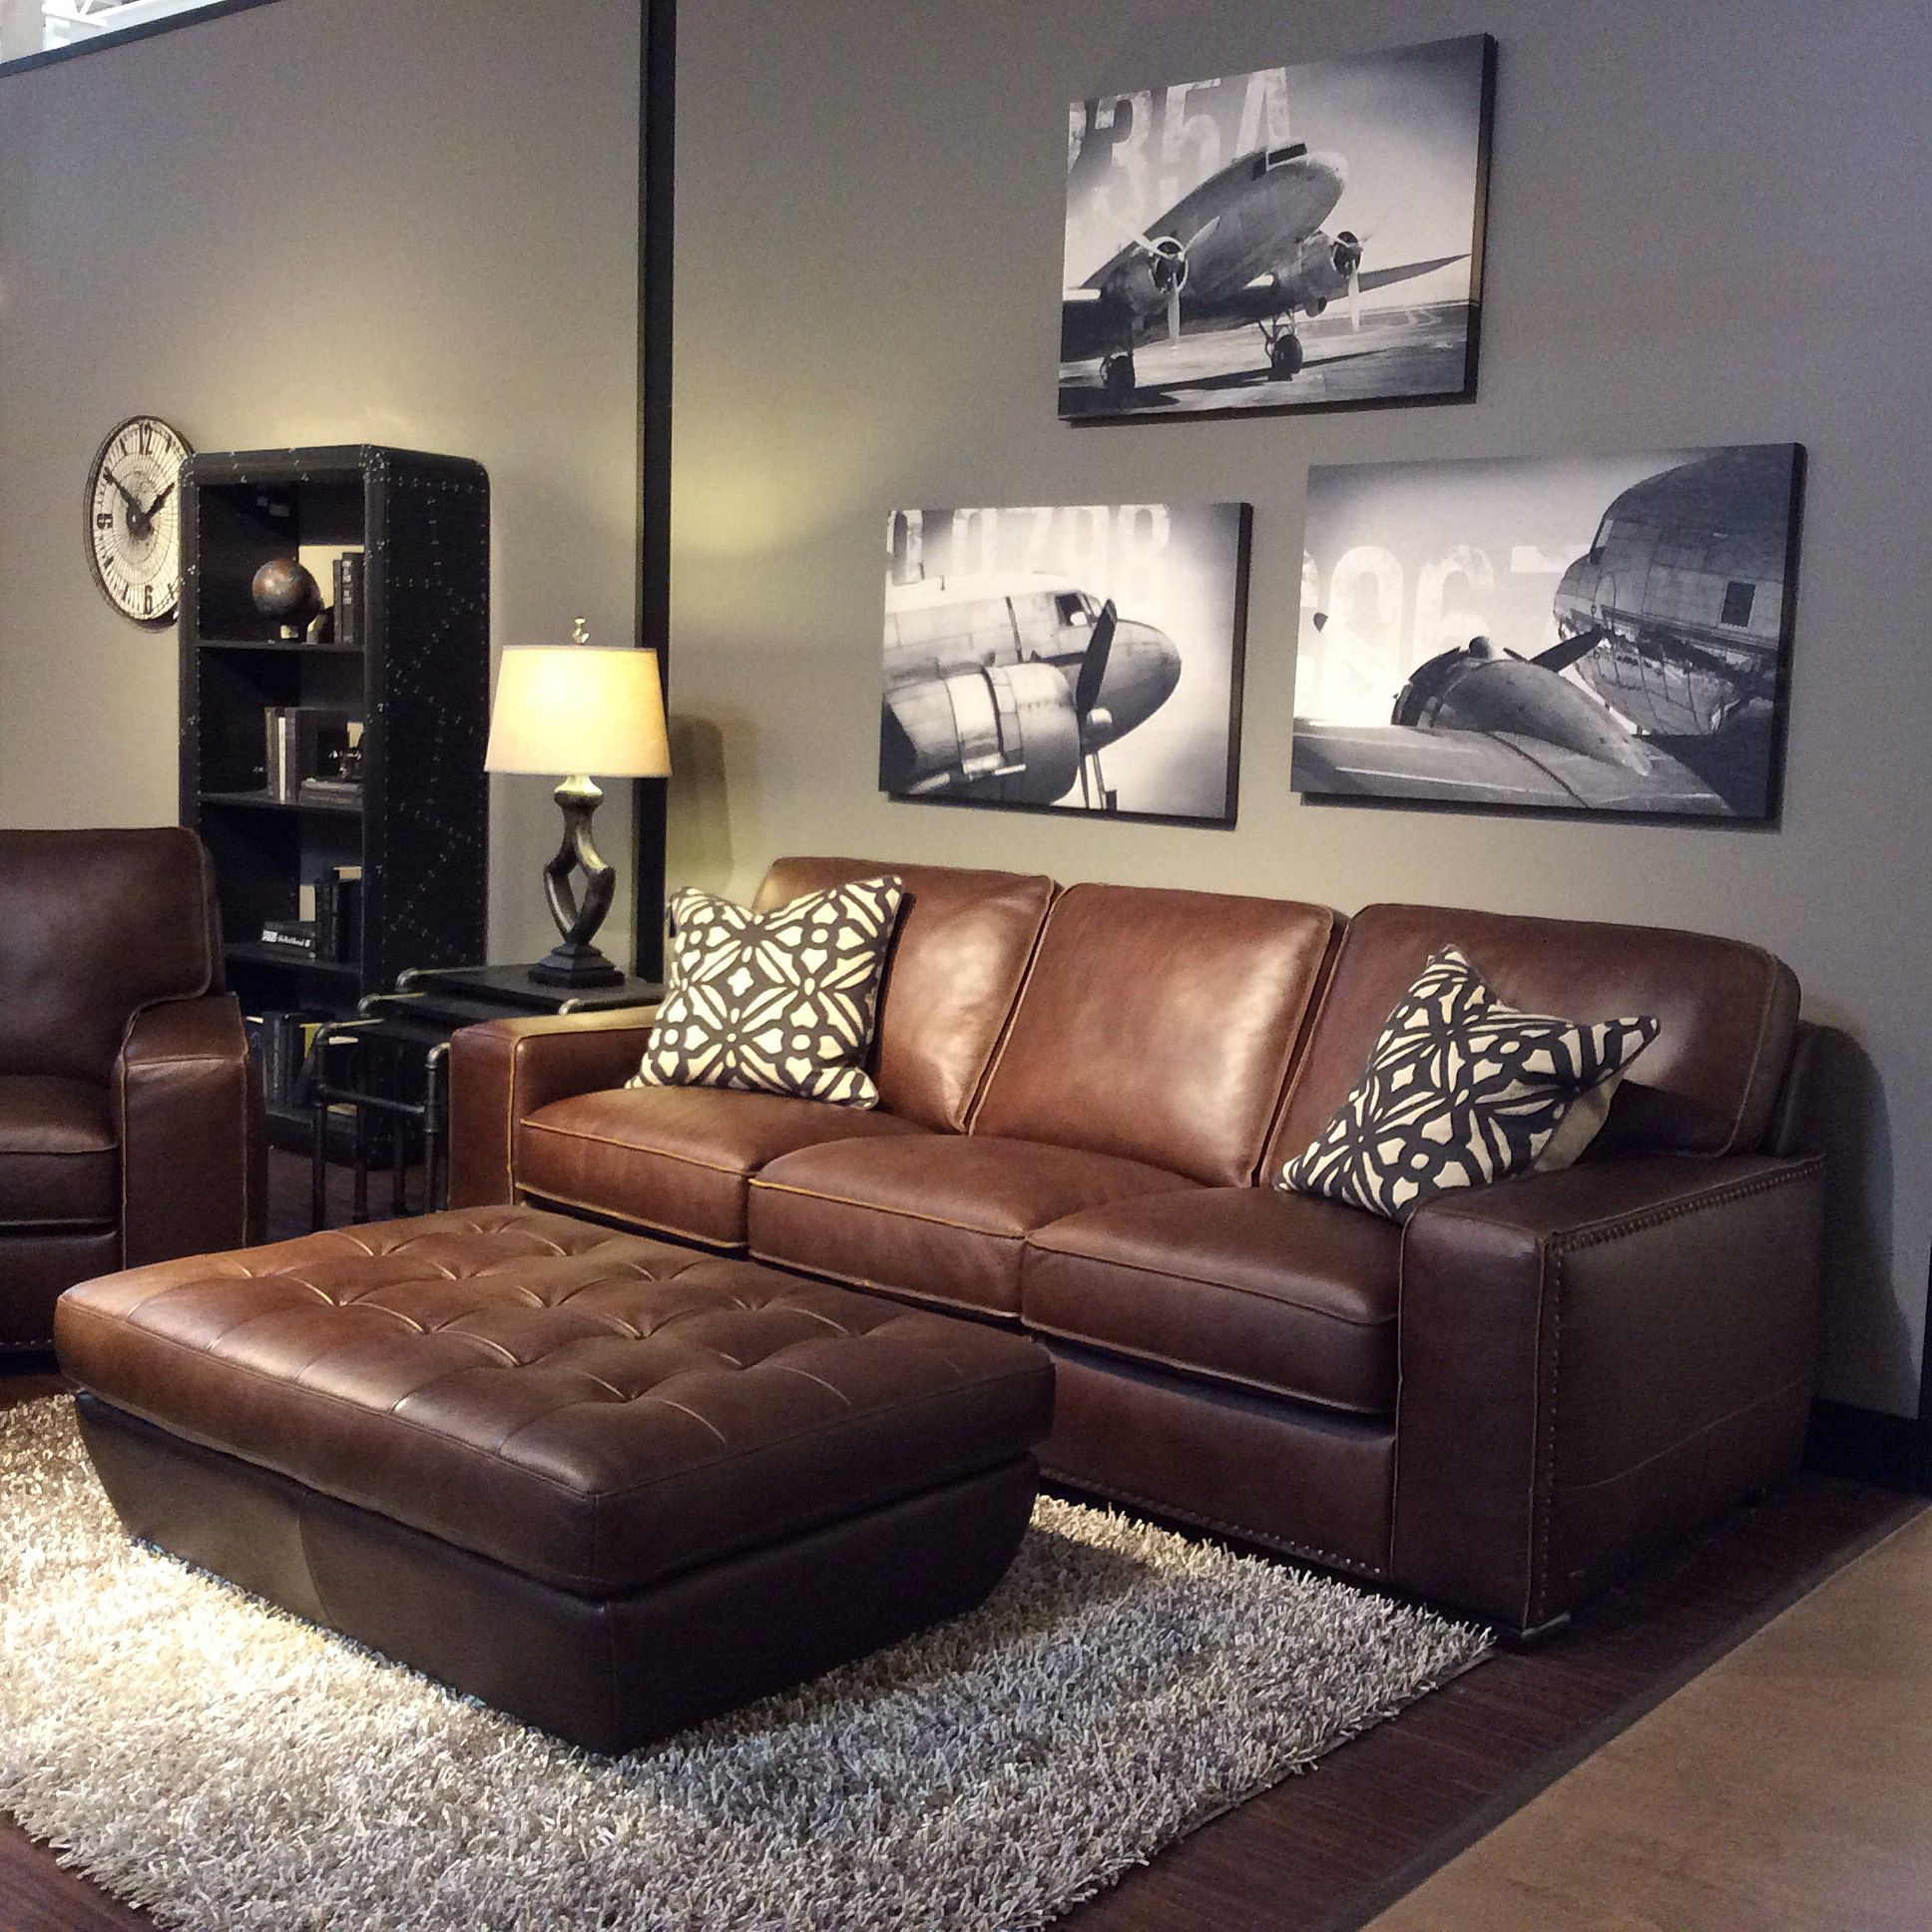 Family Room With Warm Gray Walls Black And White Art Brown Leather Furniture Ottoman